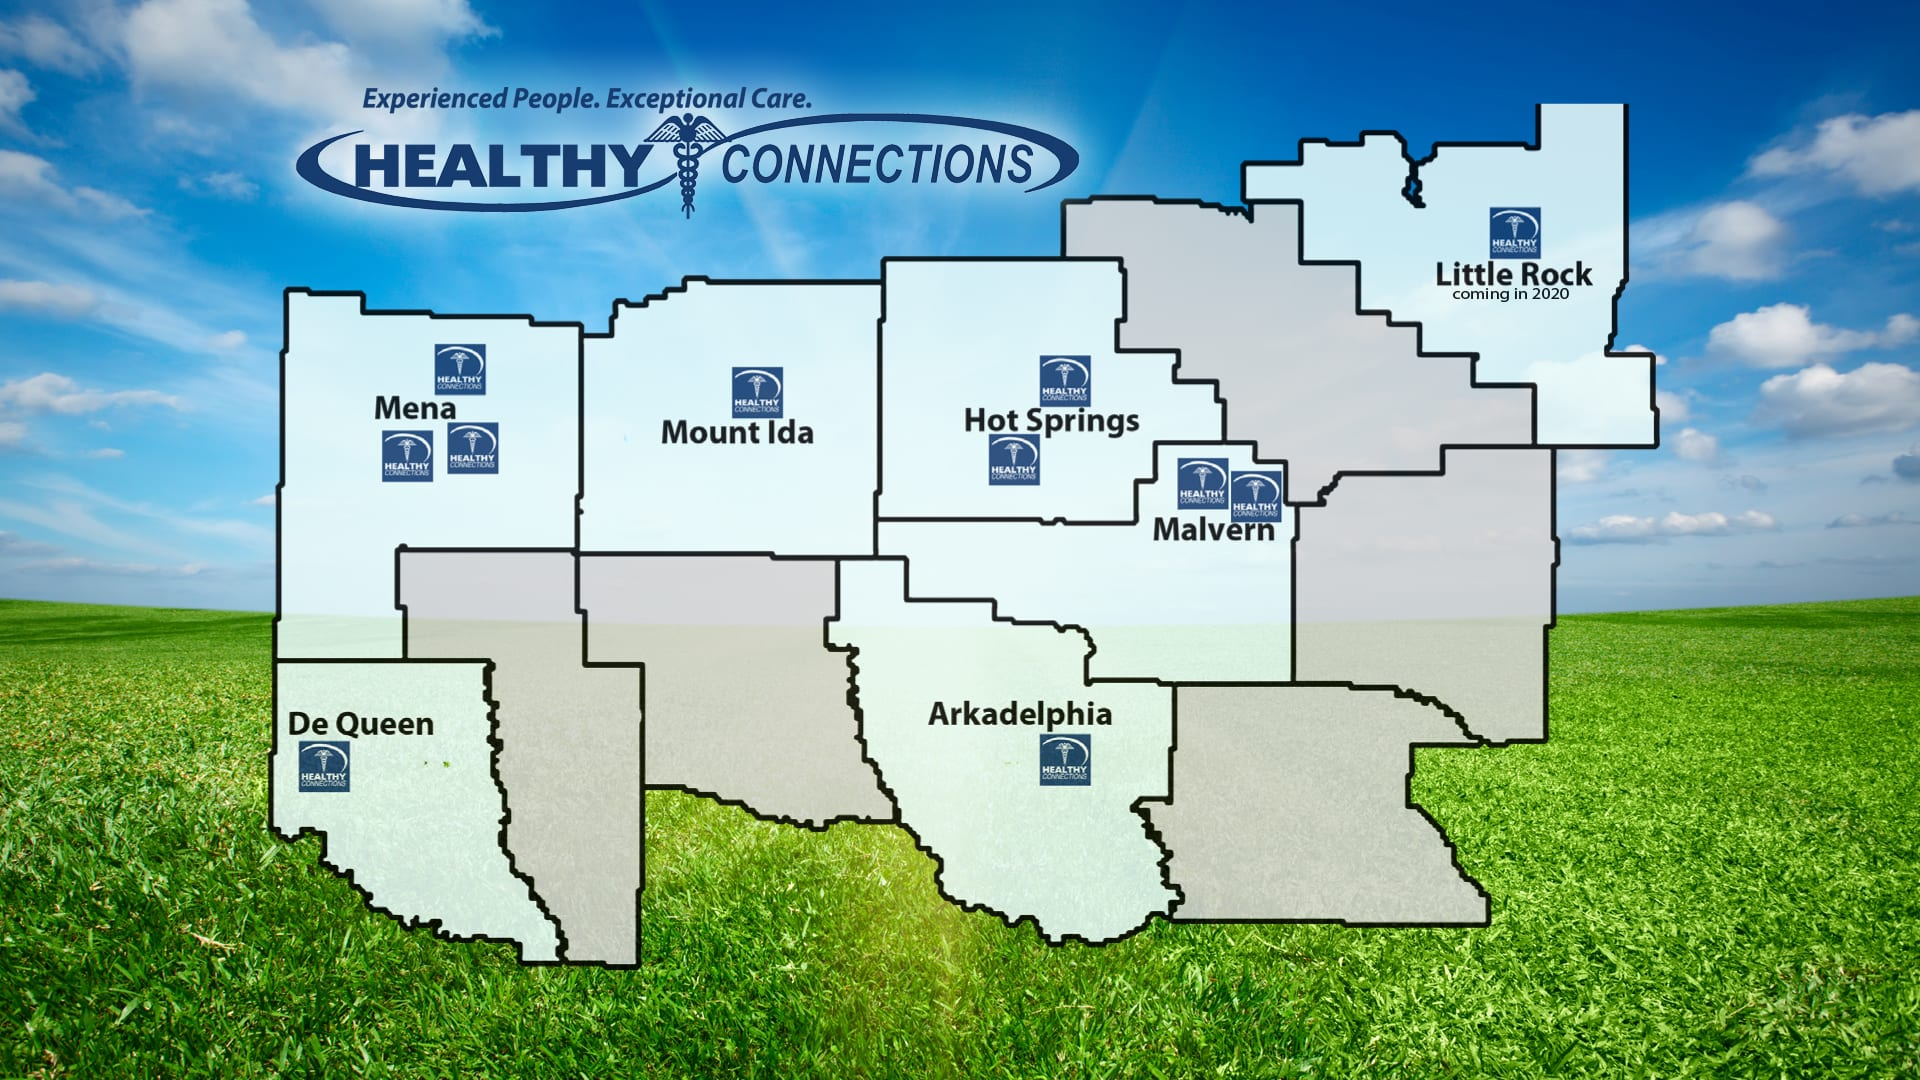 Locations | Healthy Connections on arkansas water map, arkansas food map, arkansas map scale, arkansas ouachita national forest map, arkansas financial map, arkansas elevation map, arkansas farms, missouri major cities map, arkansas national parks, arkansas climate map, arkansas state flag, arkansas political features, arkansas satellite map, arkansas outline, arkansas race map, bell mountain wilderness area trail map, arkansas map with state parks, arkansas recreational map, arkansas legal map, arkansas boston mountain range map,